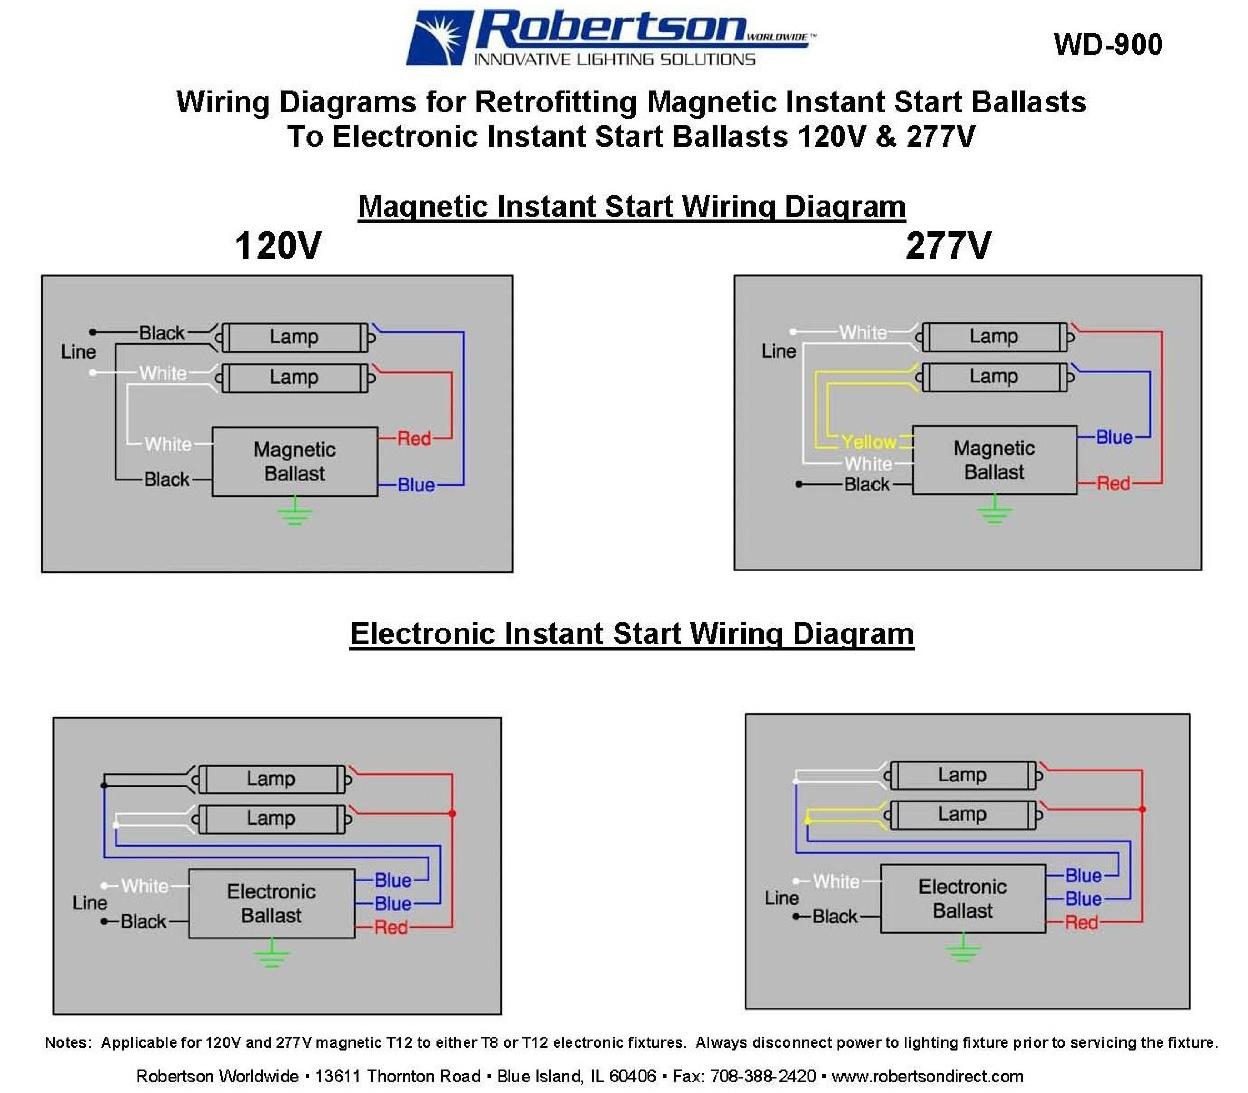 Ge T5 4 L  Ballast Wiring Diagram as well Light Glow Love Twitter Layout moreover B00HS5APIC additionally 3 Wire Ballast Resistor Wiring Diagram Distributor further Gm Points Distributor Wiring Diagram. on advance ballast wiring diagram